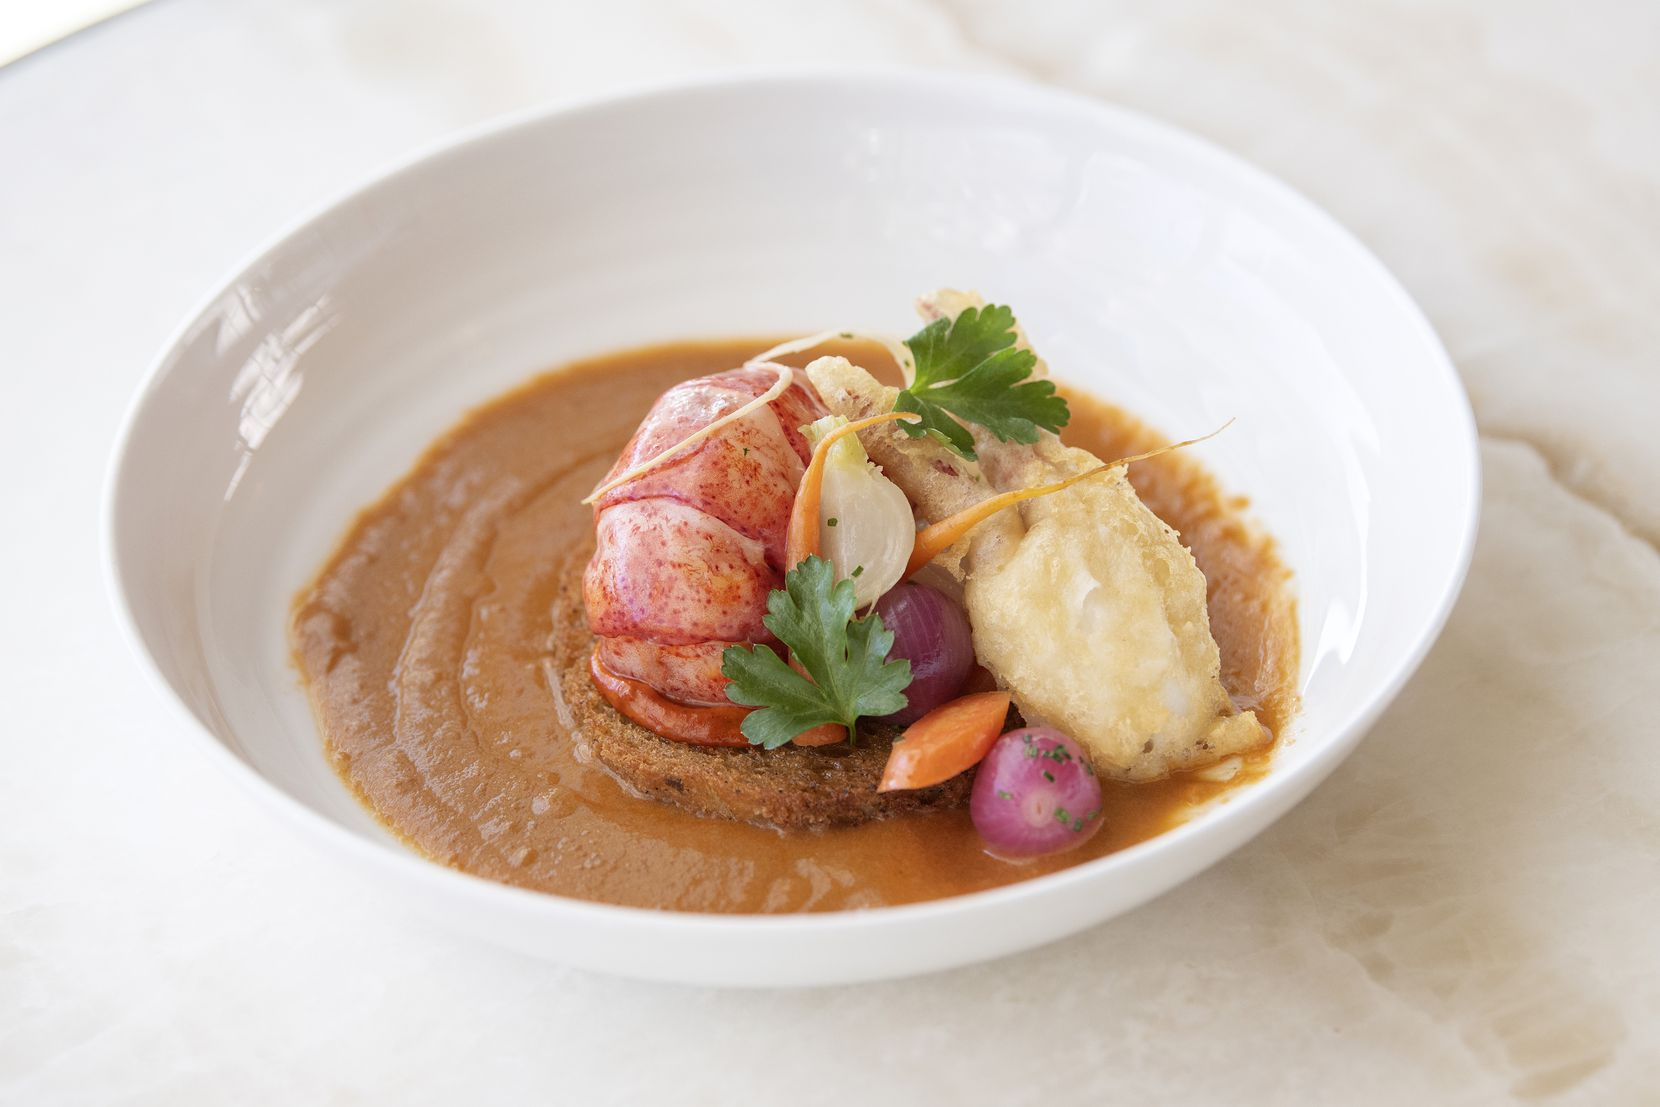 Bisque de Homard is served at Bullion, Feb. 6, 2020, in downtown Dallas. The dish includes a Lobster bisque, brioche croutons, lobster tempura and a saffron aioli.